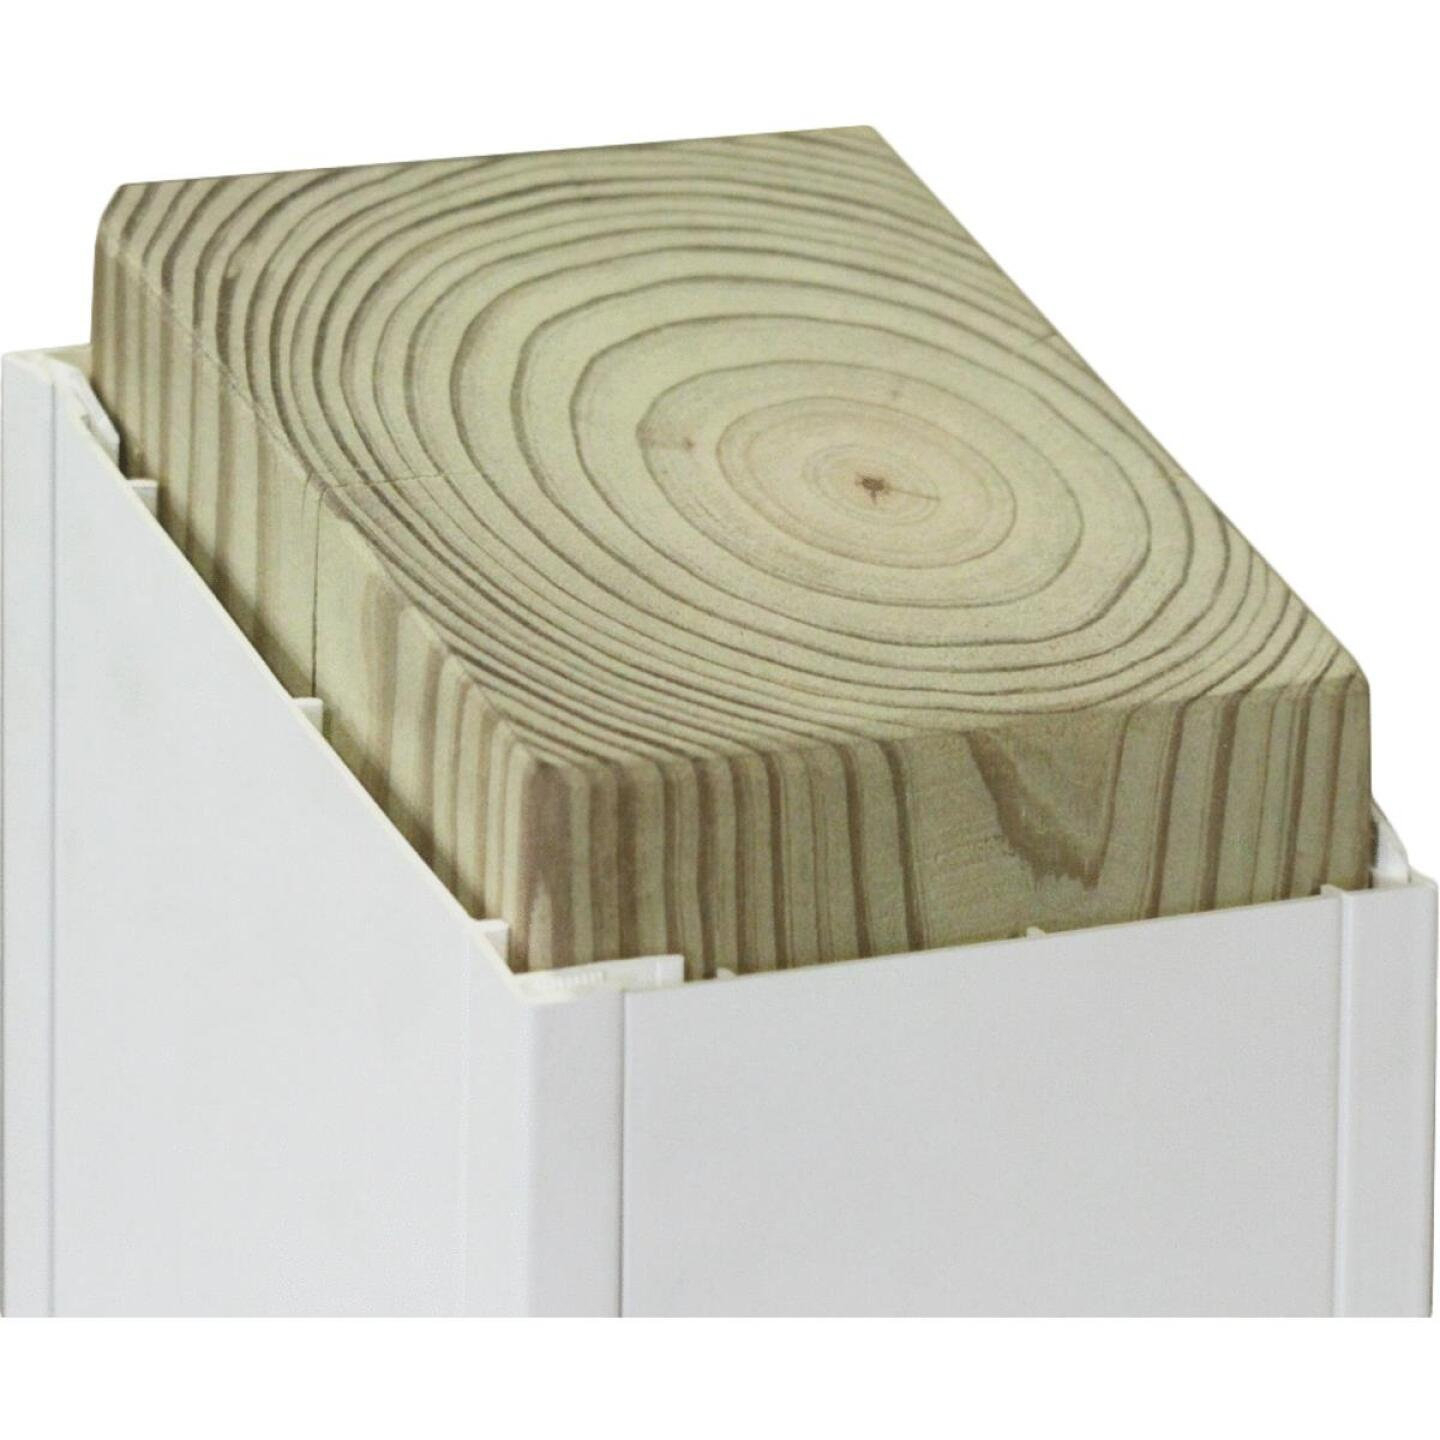 Beechdale 6 In. W x 6 In. H x 120 In. L White PVC Smooth Post Wrap Image 2